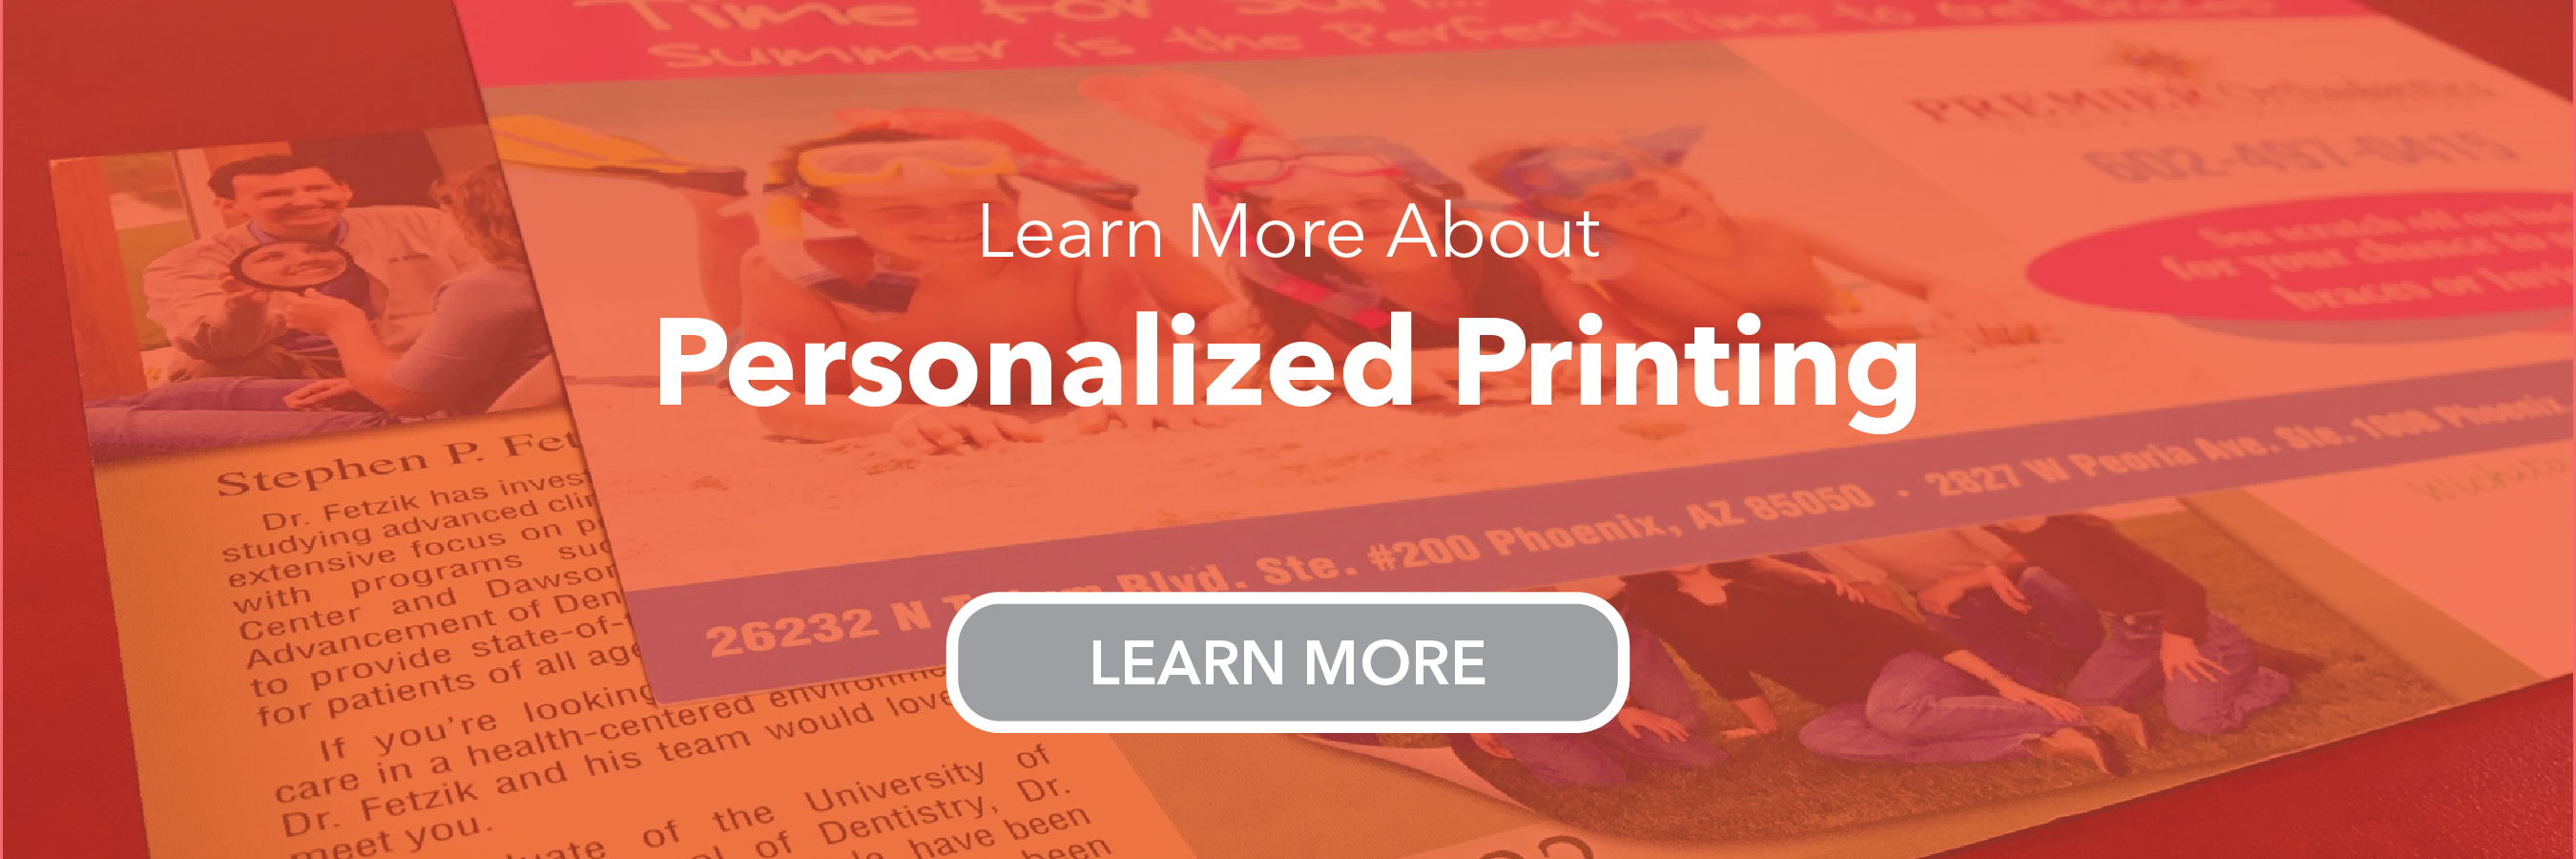 personalized printing